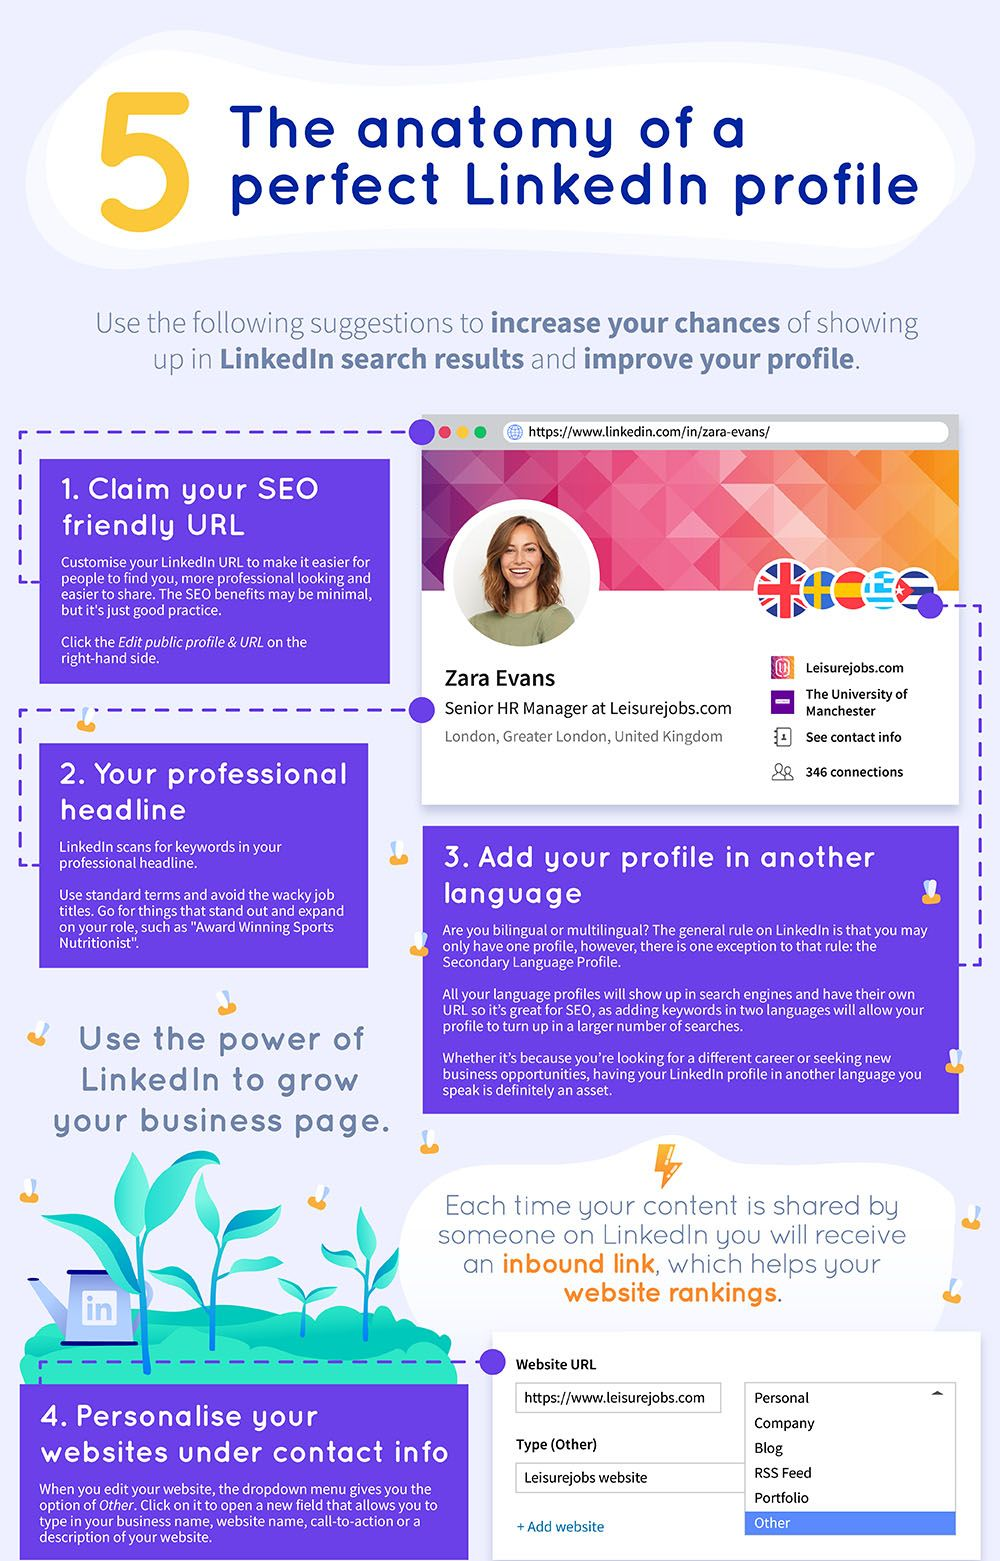 Need A Better Linkedin Profile Check Out This Cheat Sheet Small Business Trends Linkedin Profile Small Business Trends Marketing Jobs